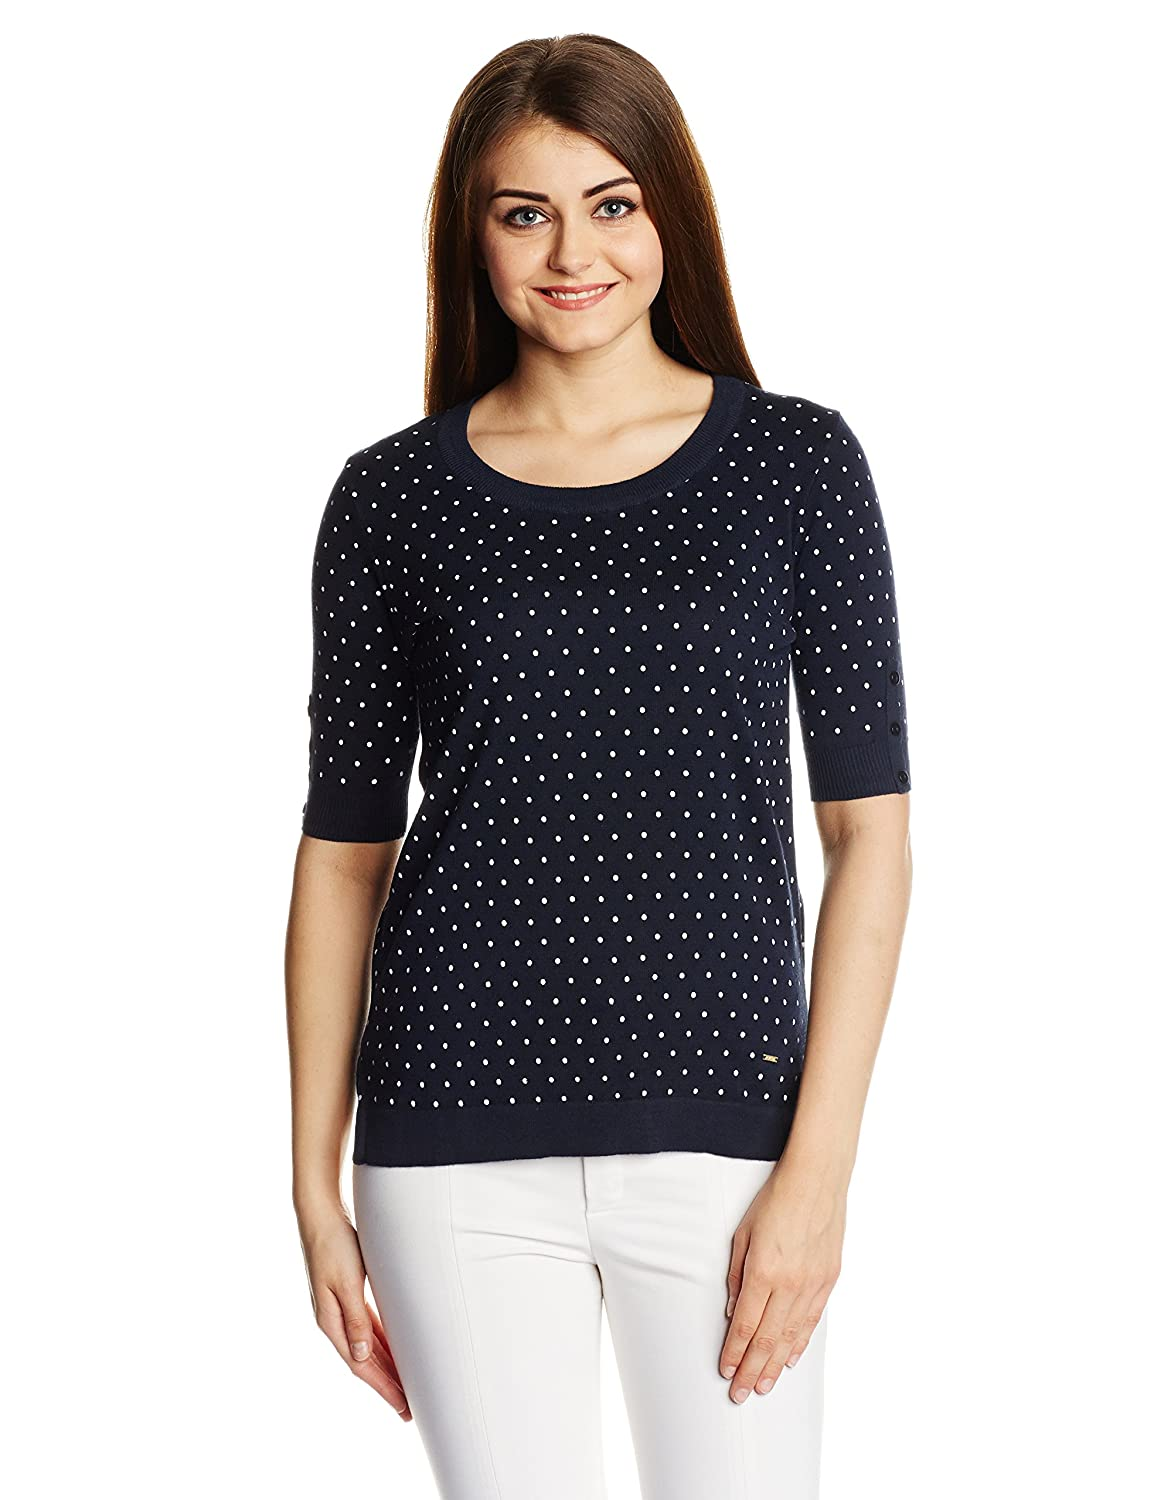 81tnYQ-0eeL._UL1500_ United Colors of Benetton Clothing 50% off or more from Rs. 179 – Amazon